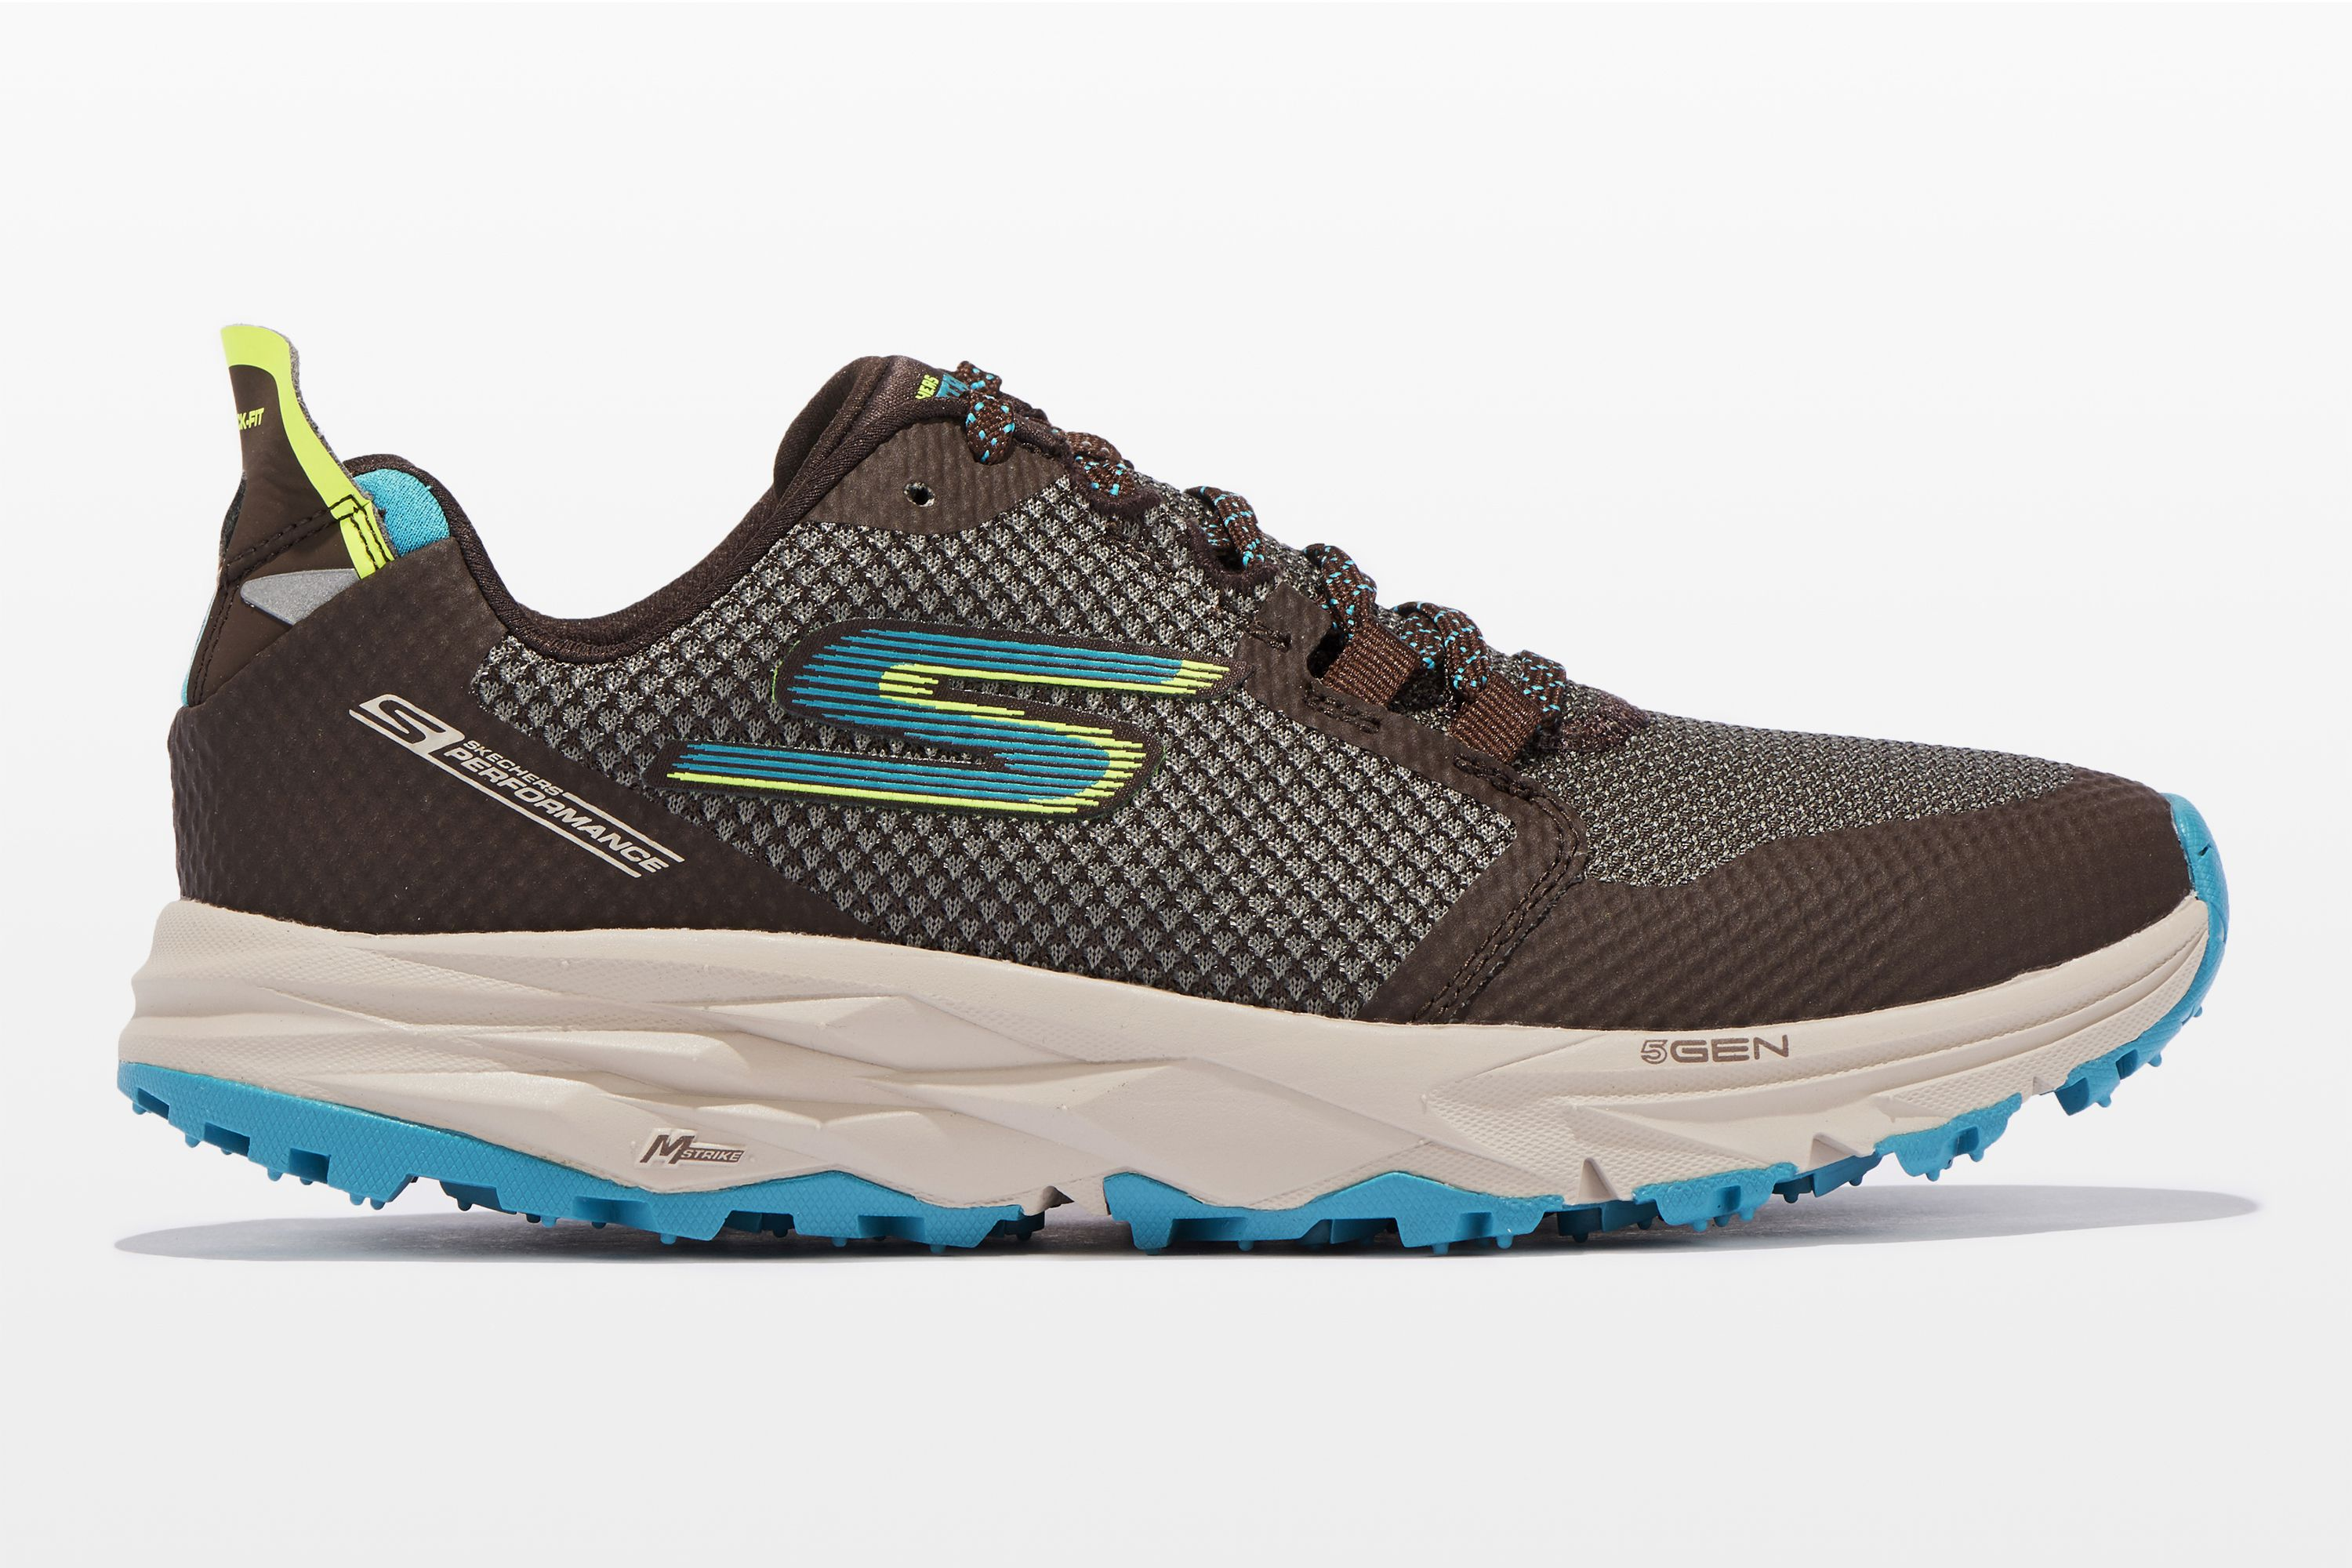 e0a2c2c244b52 Skechers Running Shoes | 9 Best Skechers Shoes 2019